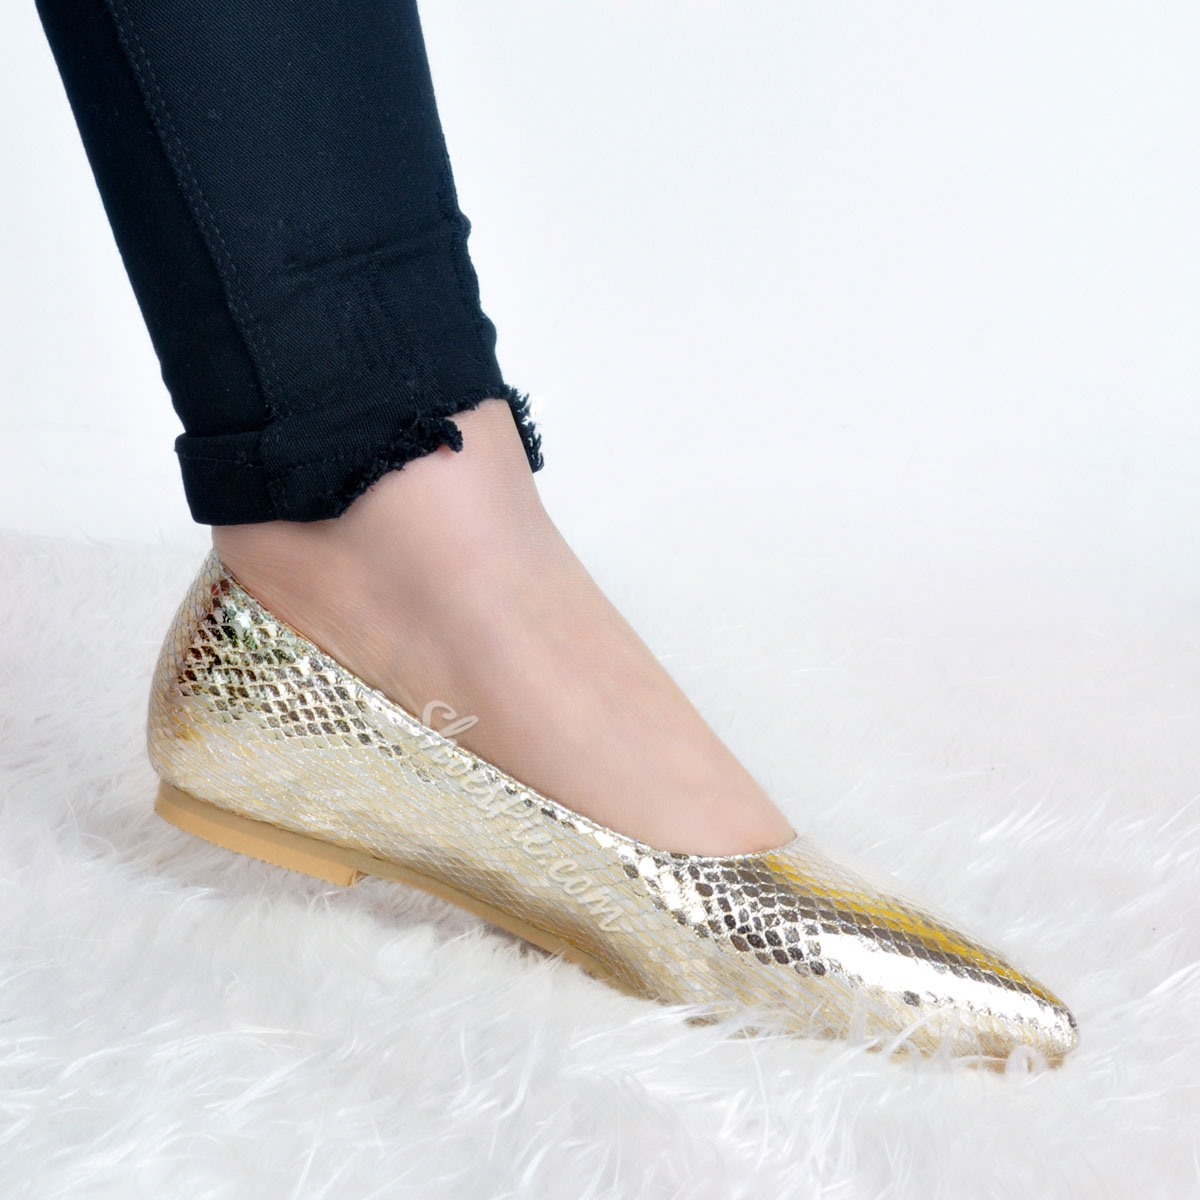 Shoespie Elegant Pointed Toe Thread Loafers